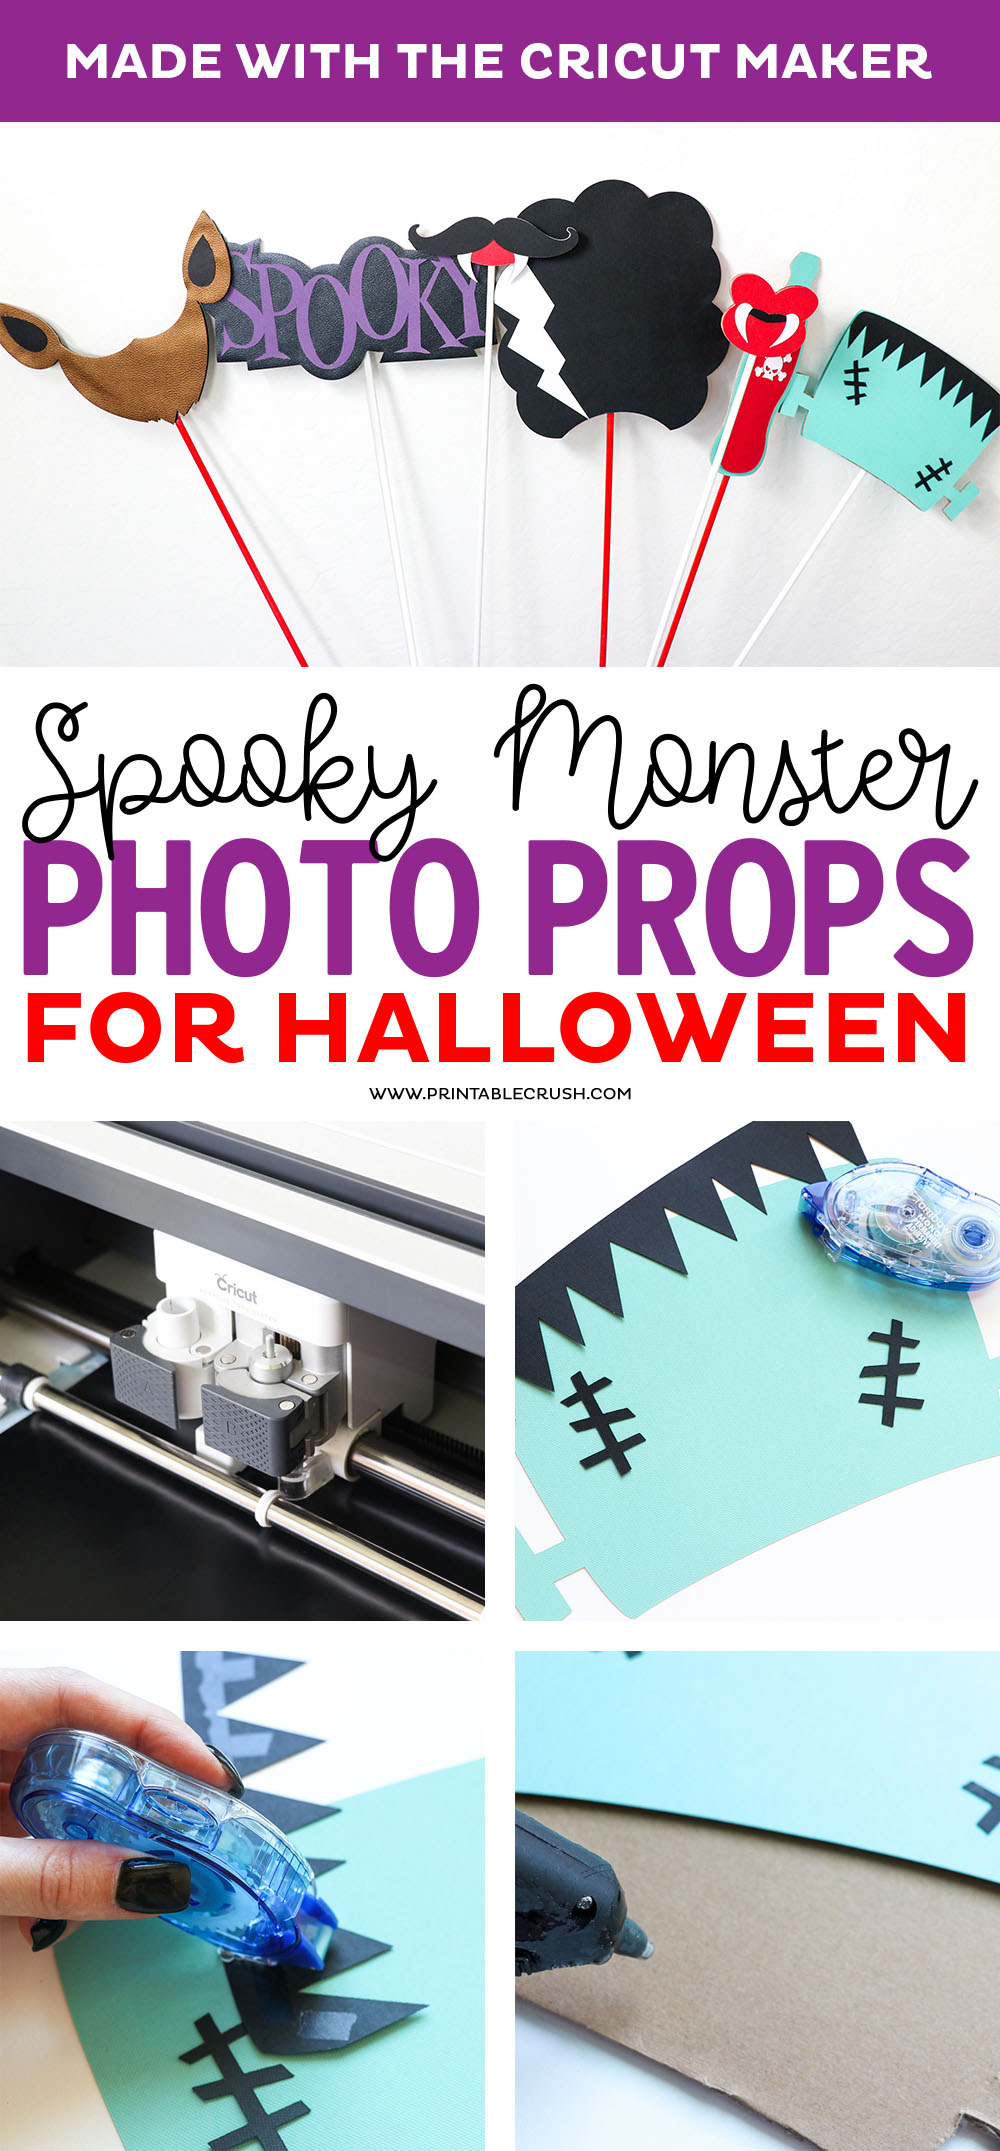 You can easily create these Monster Photo Props with the Cricut Maker! They are the perfect prop for Halloween costume pictures.